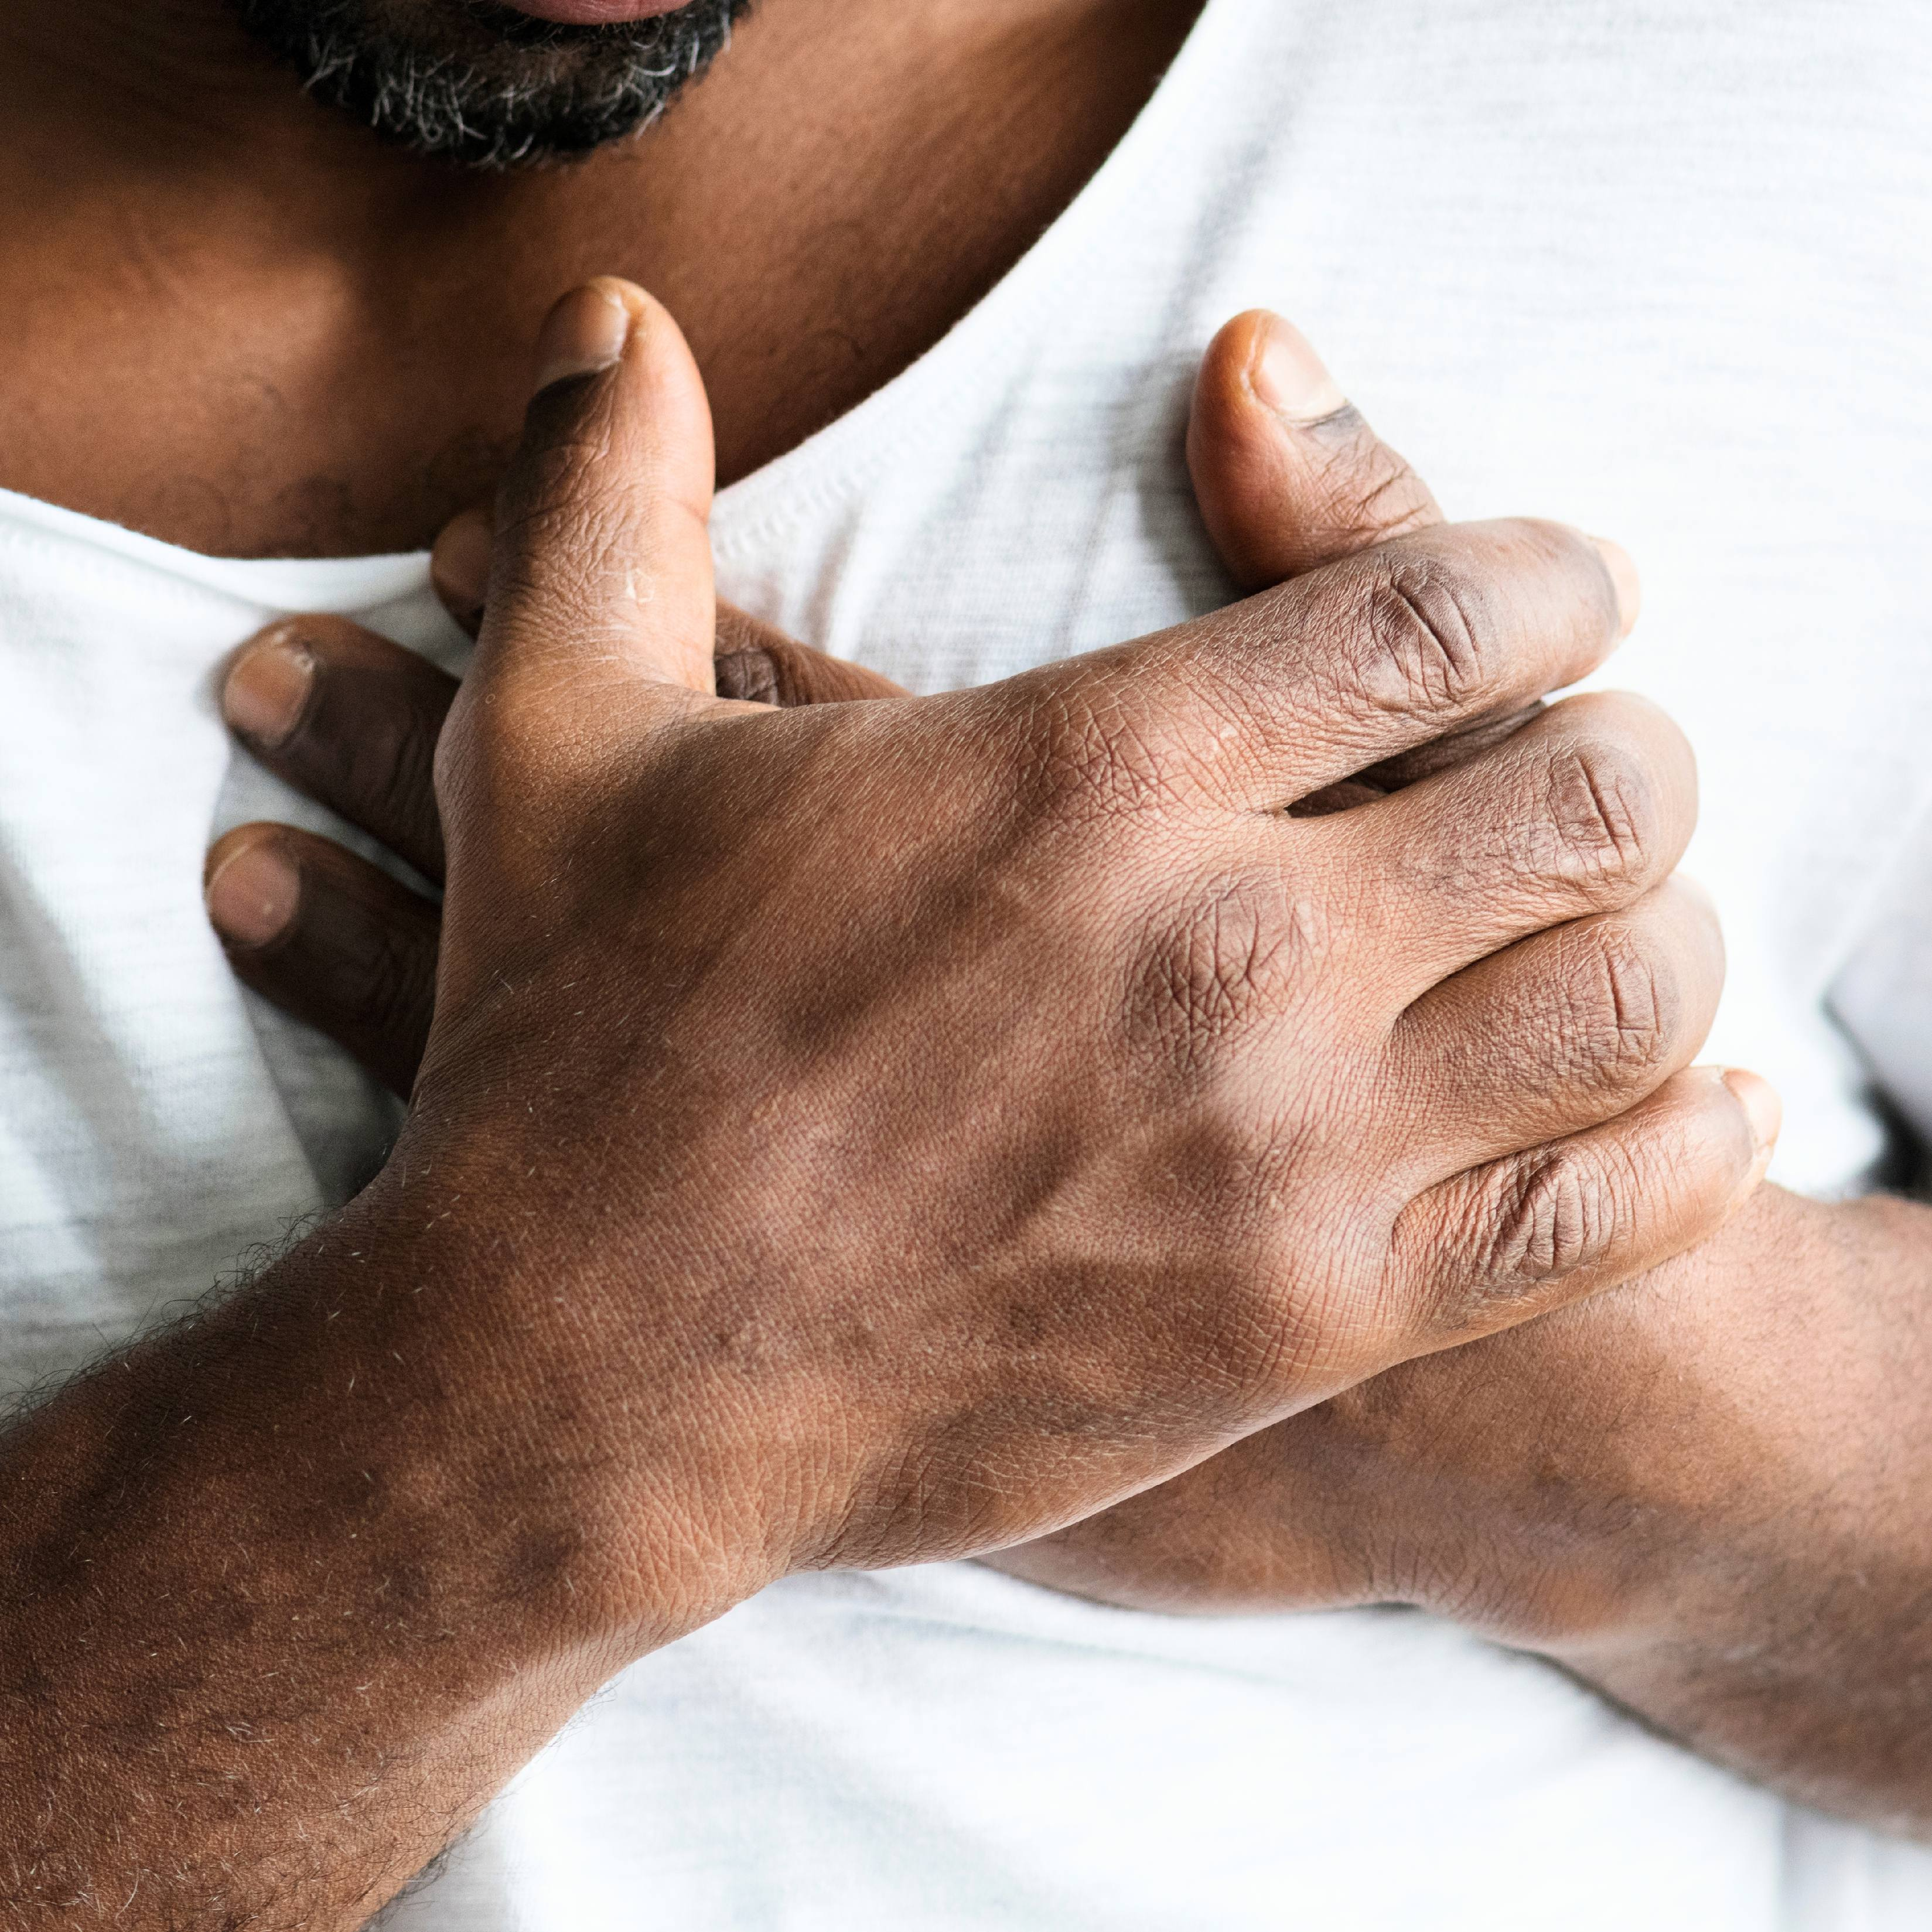 a closeup of a Black man in a t-shirt grasping his chest as if he's having heart pain or a heart attack